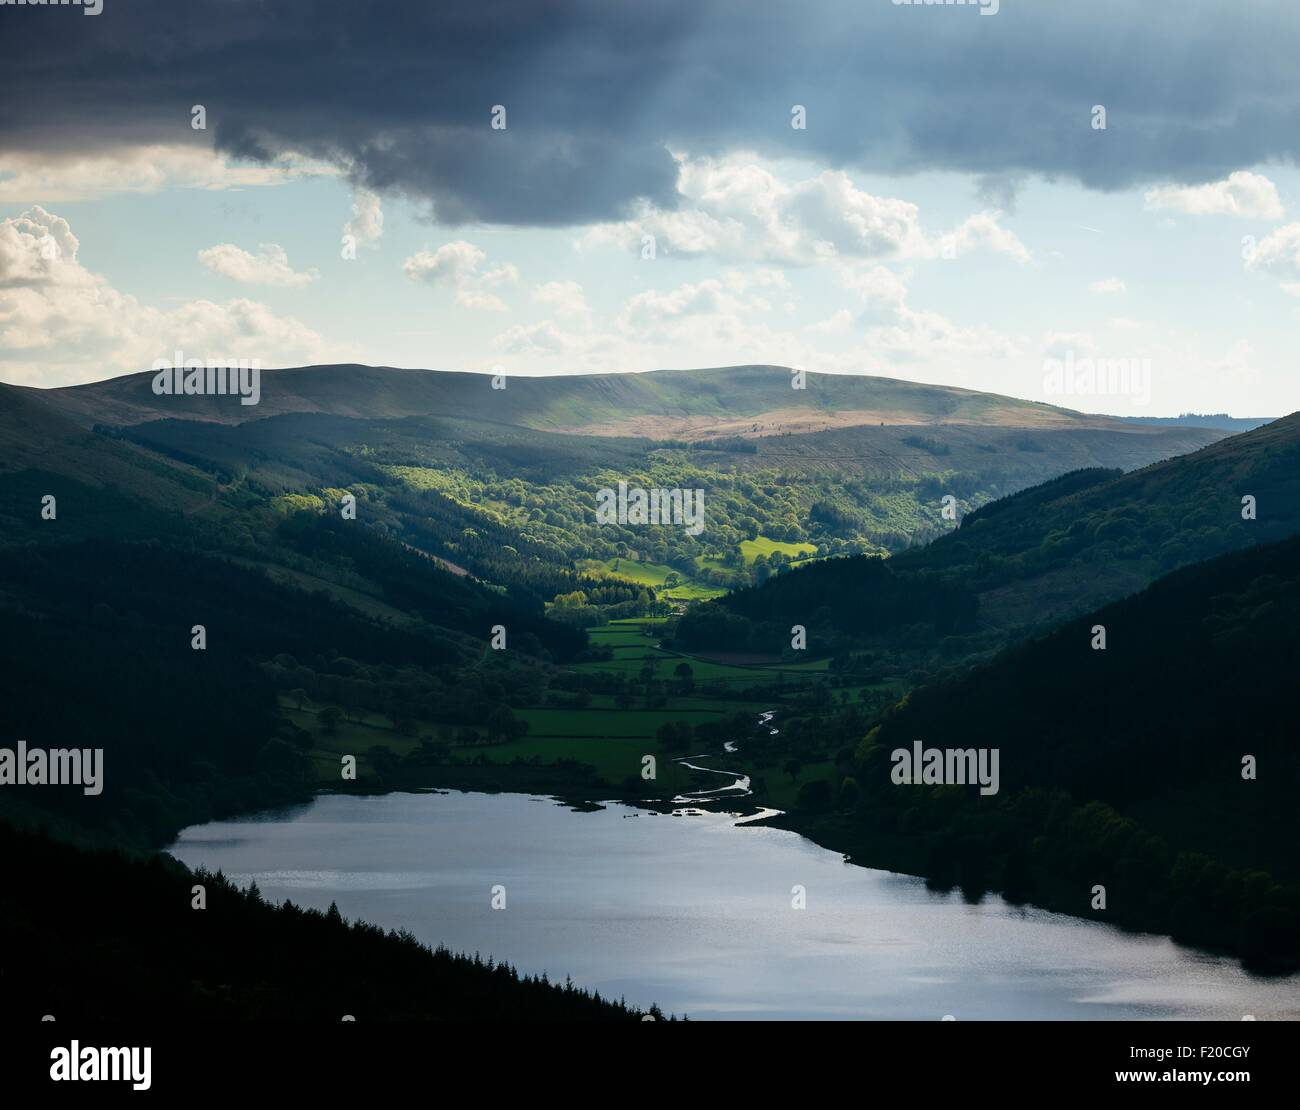 Talybont Reservoir and Glyn Collwn Valley, Brecon Beacons National Park, Wales, UK - Stock Image